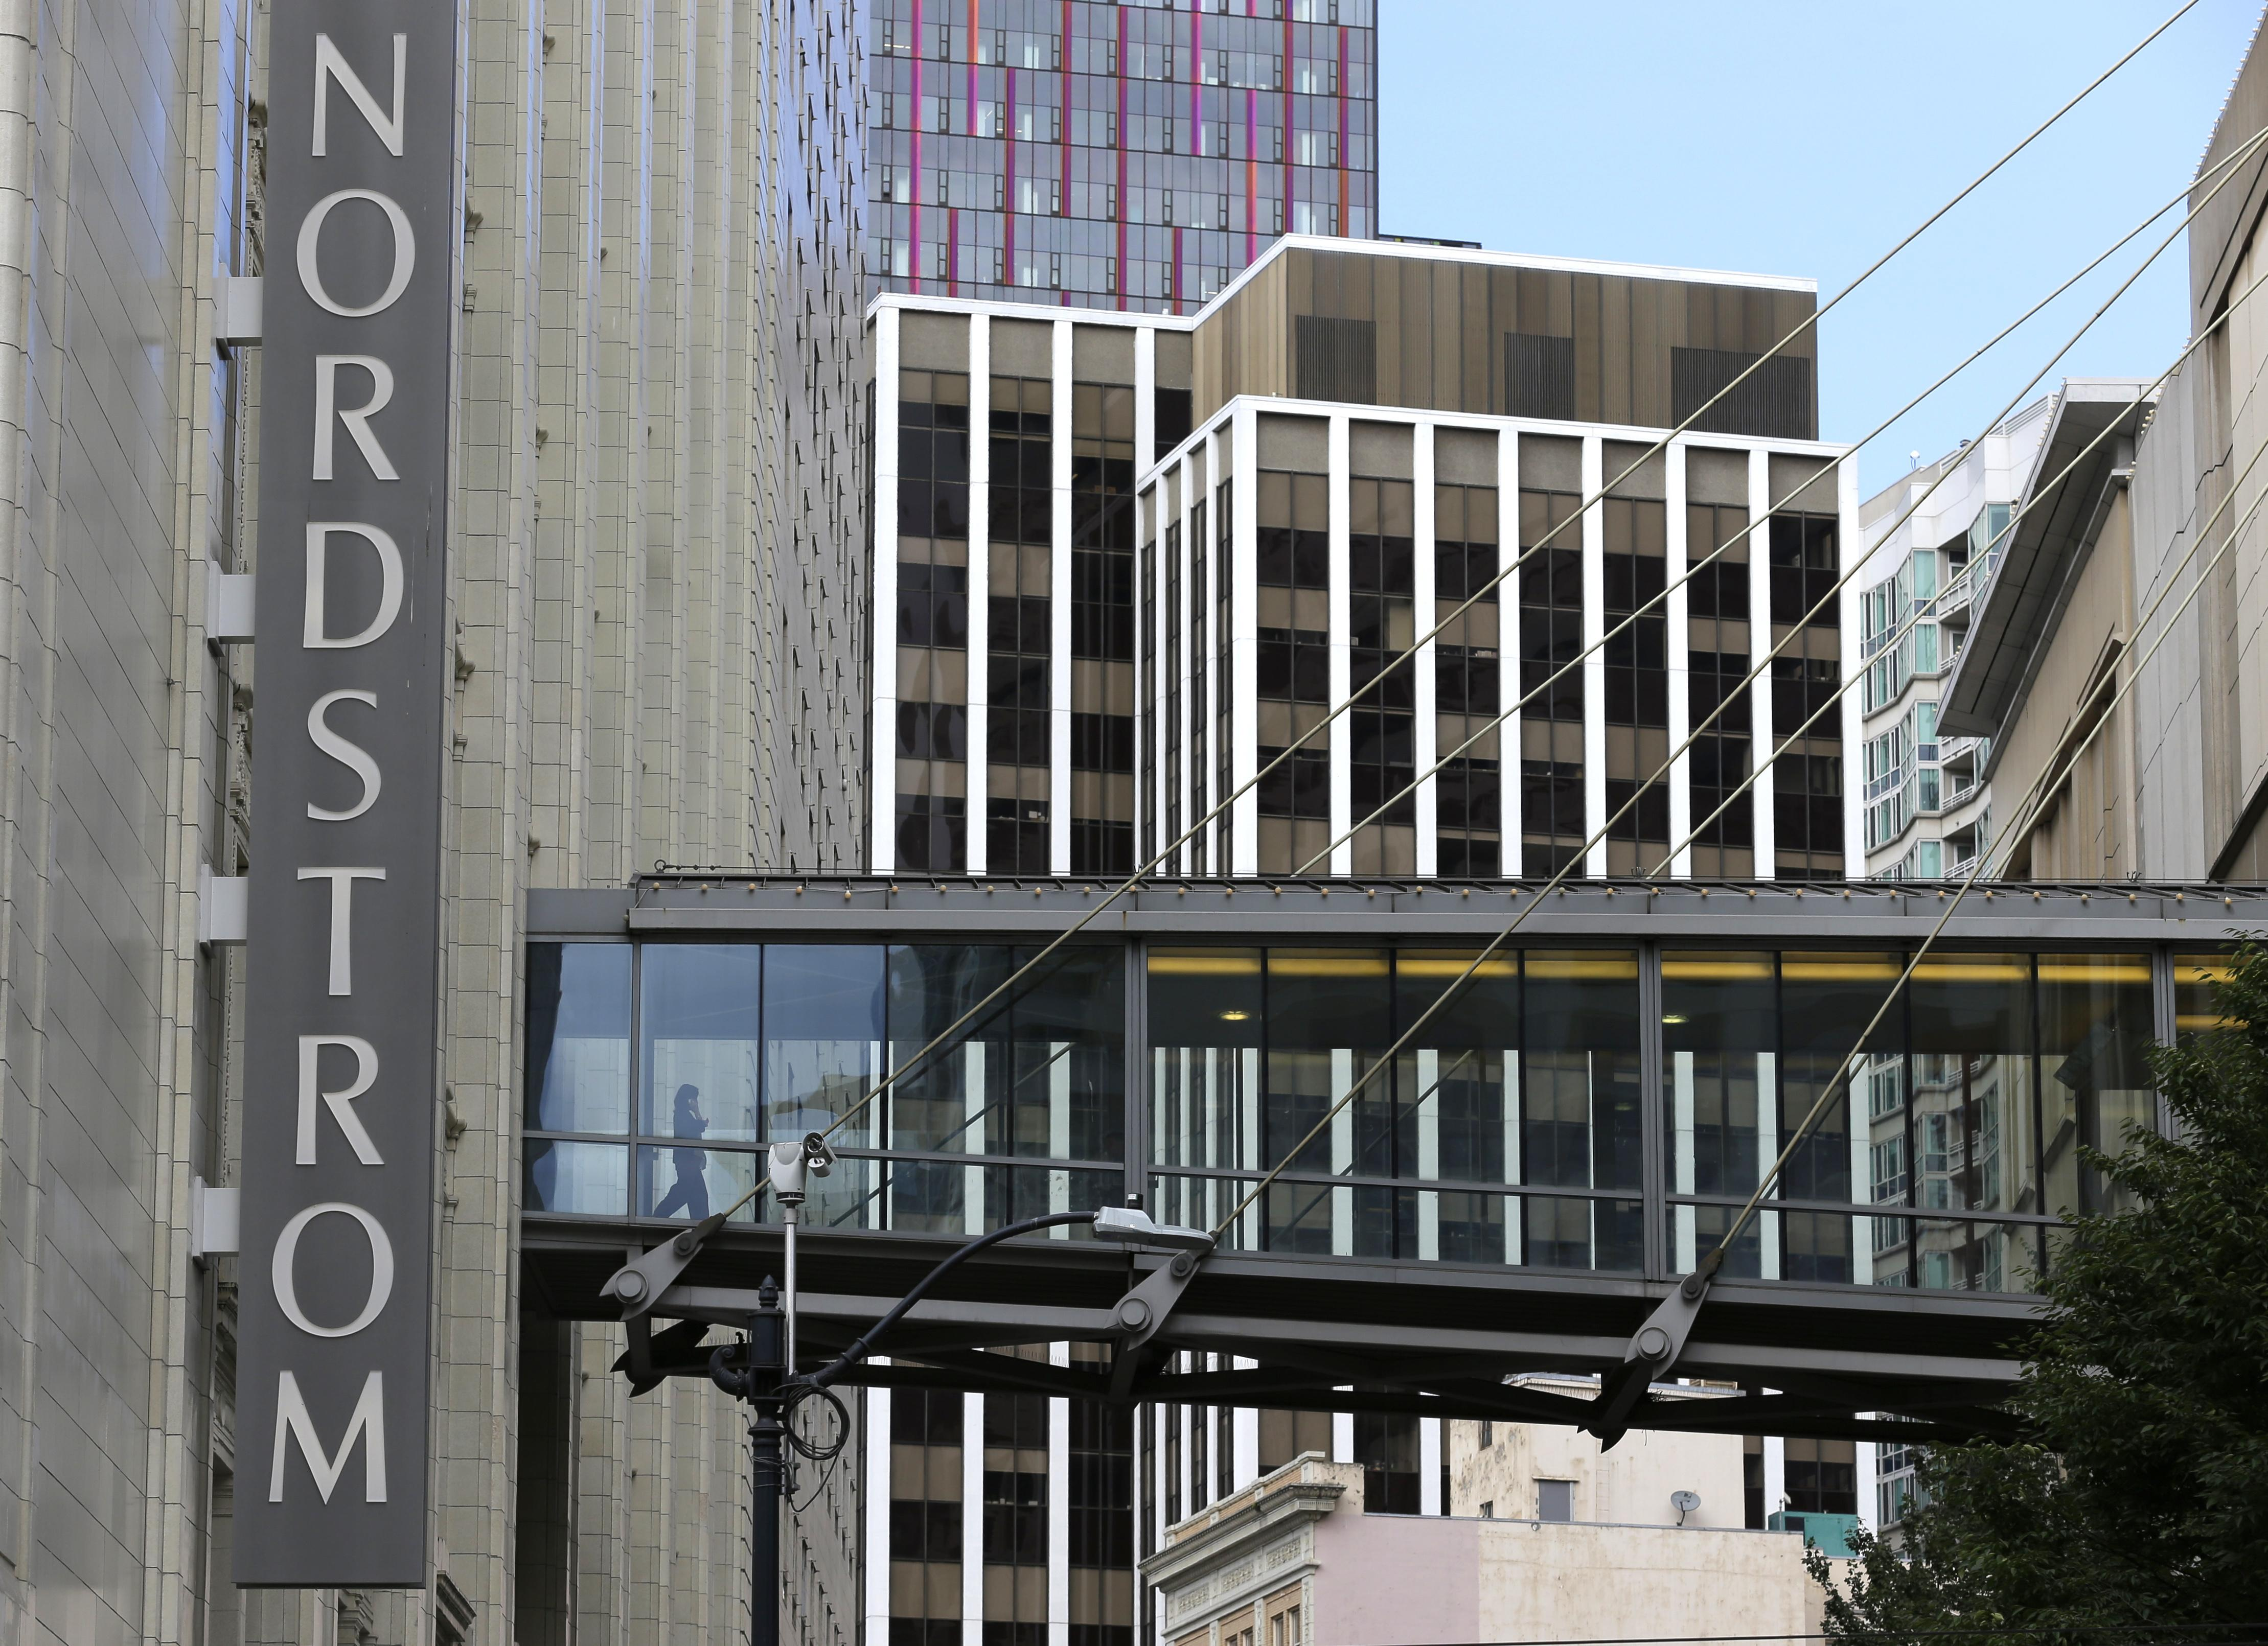 Nordstrom to close its Seattle Northgate store in August